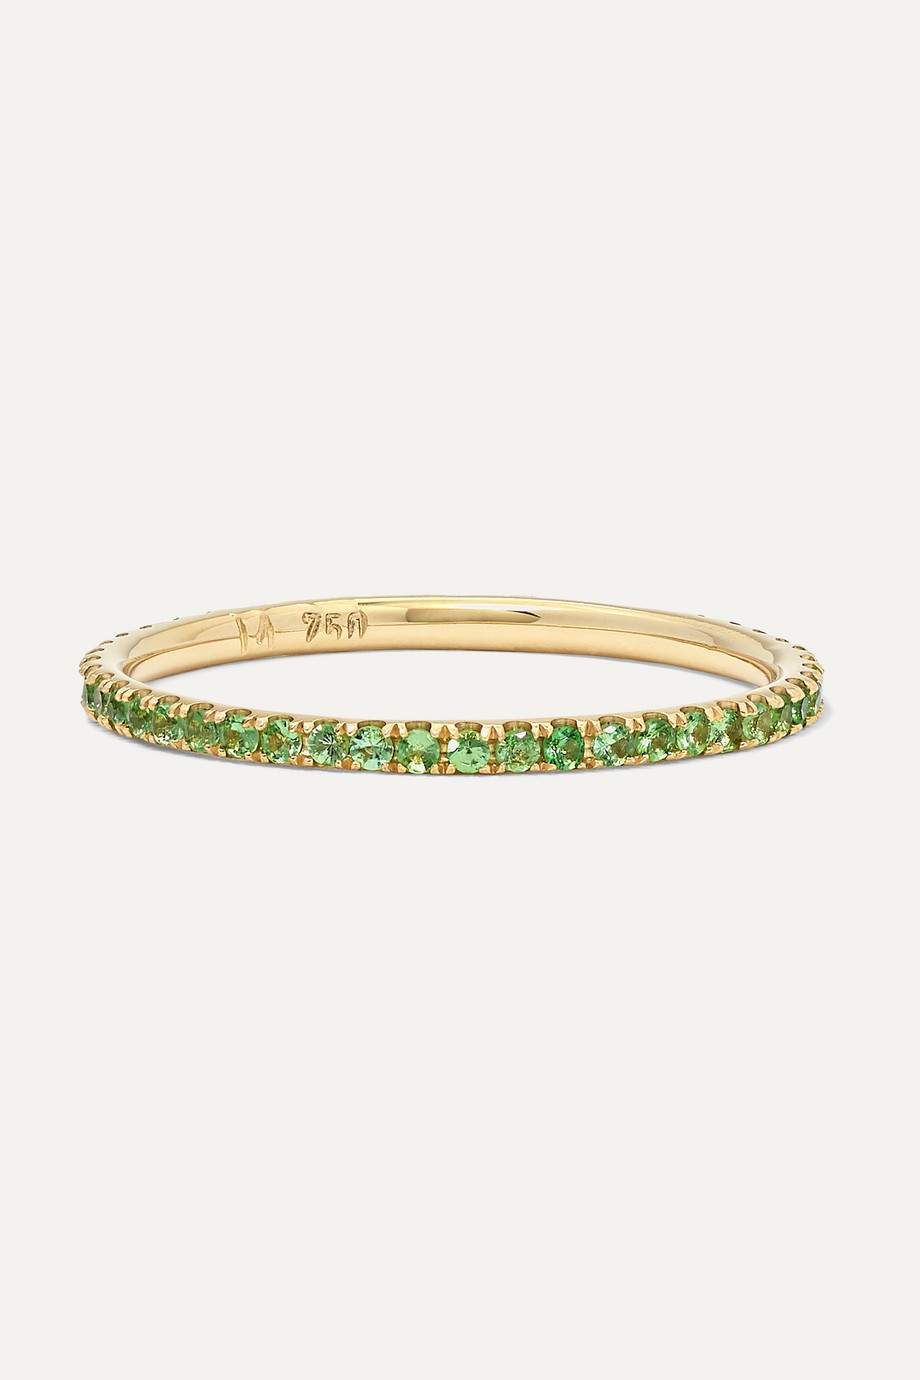 Ileana Makri Thread 18-karat gold tsavorite ring